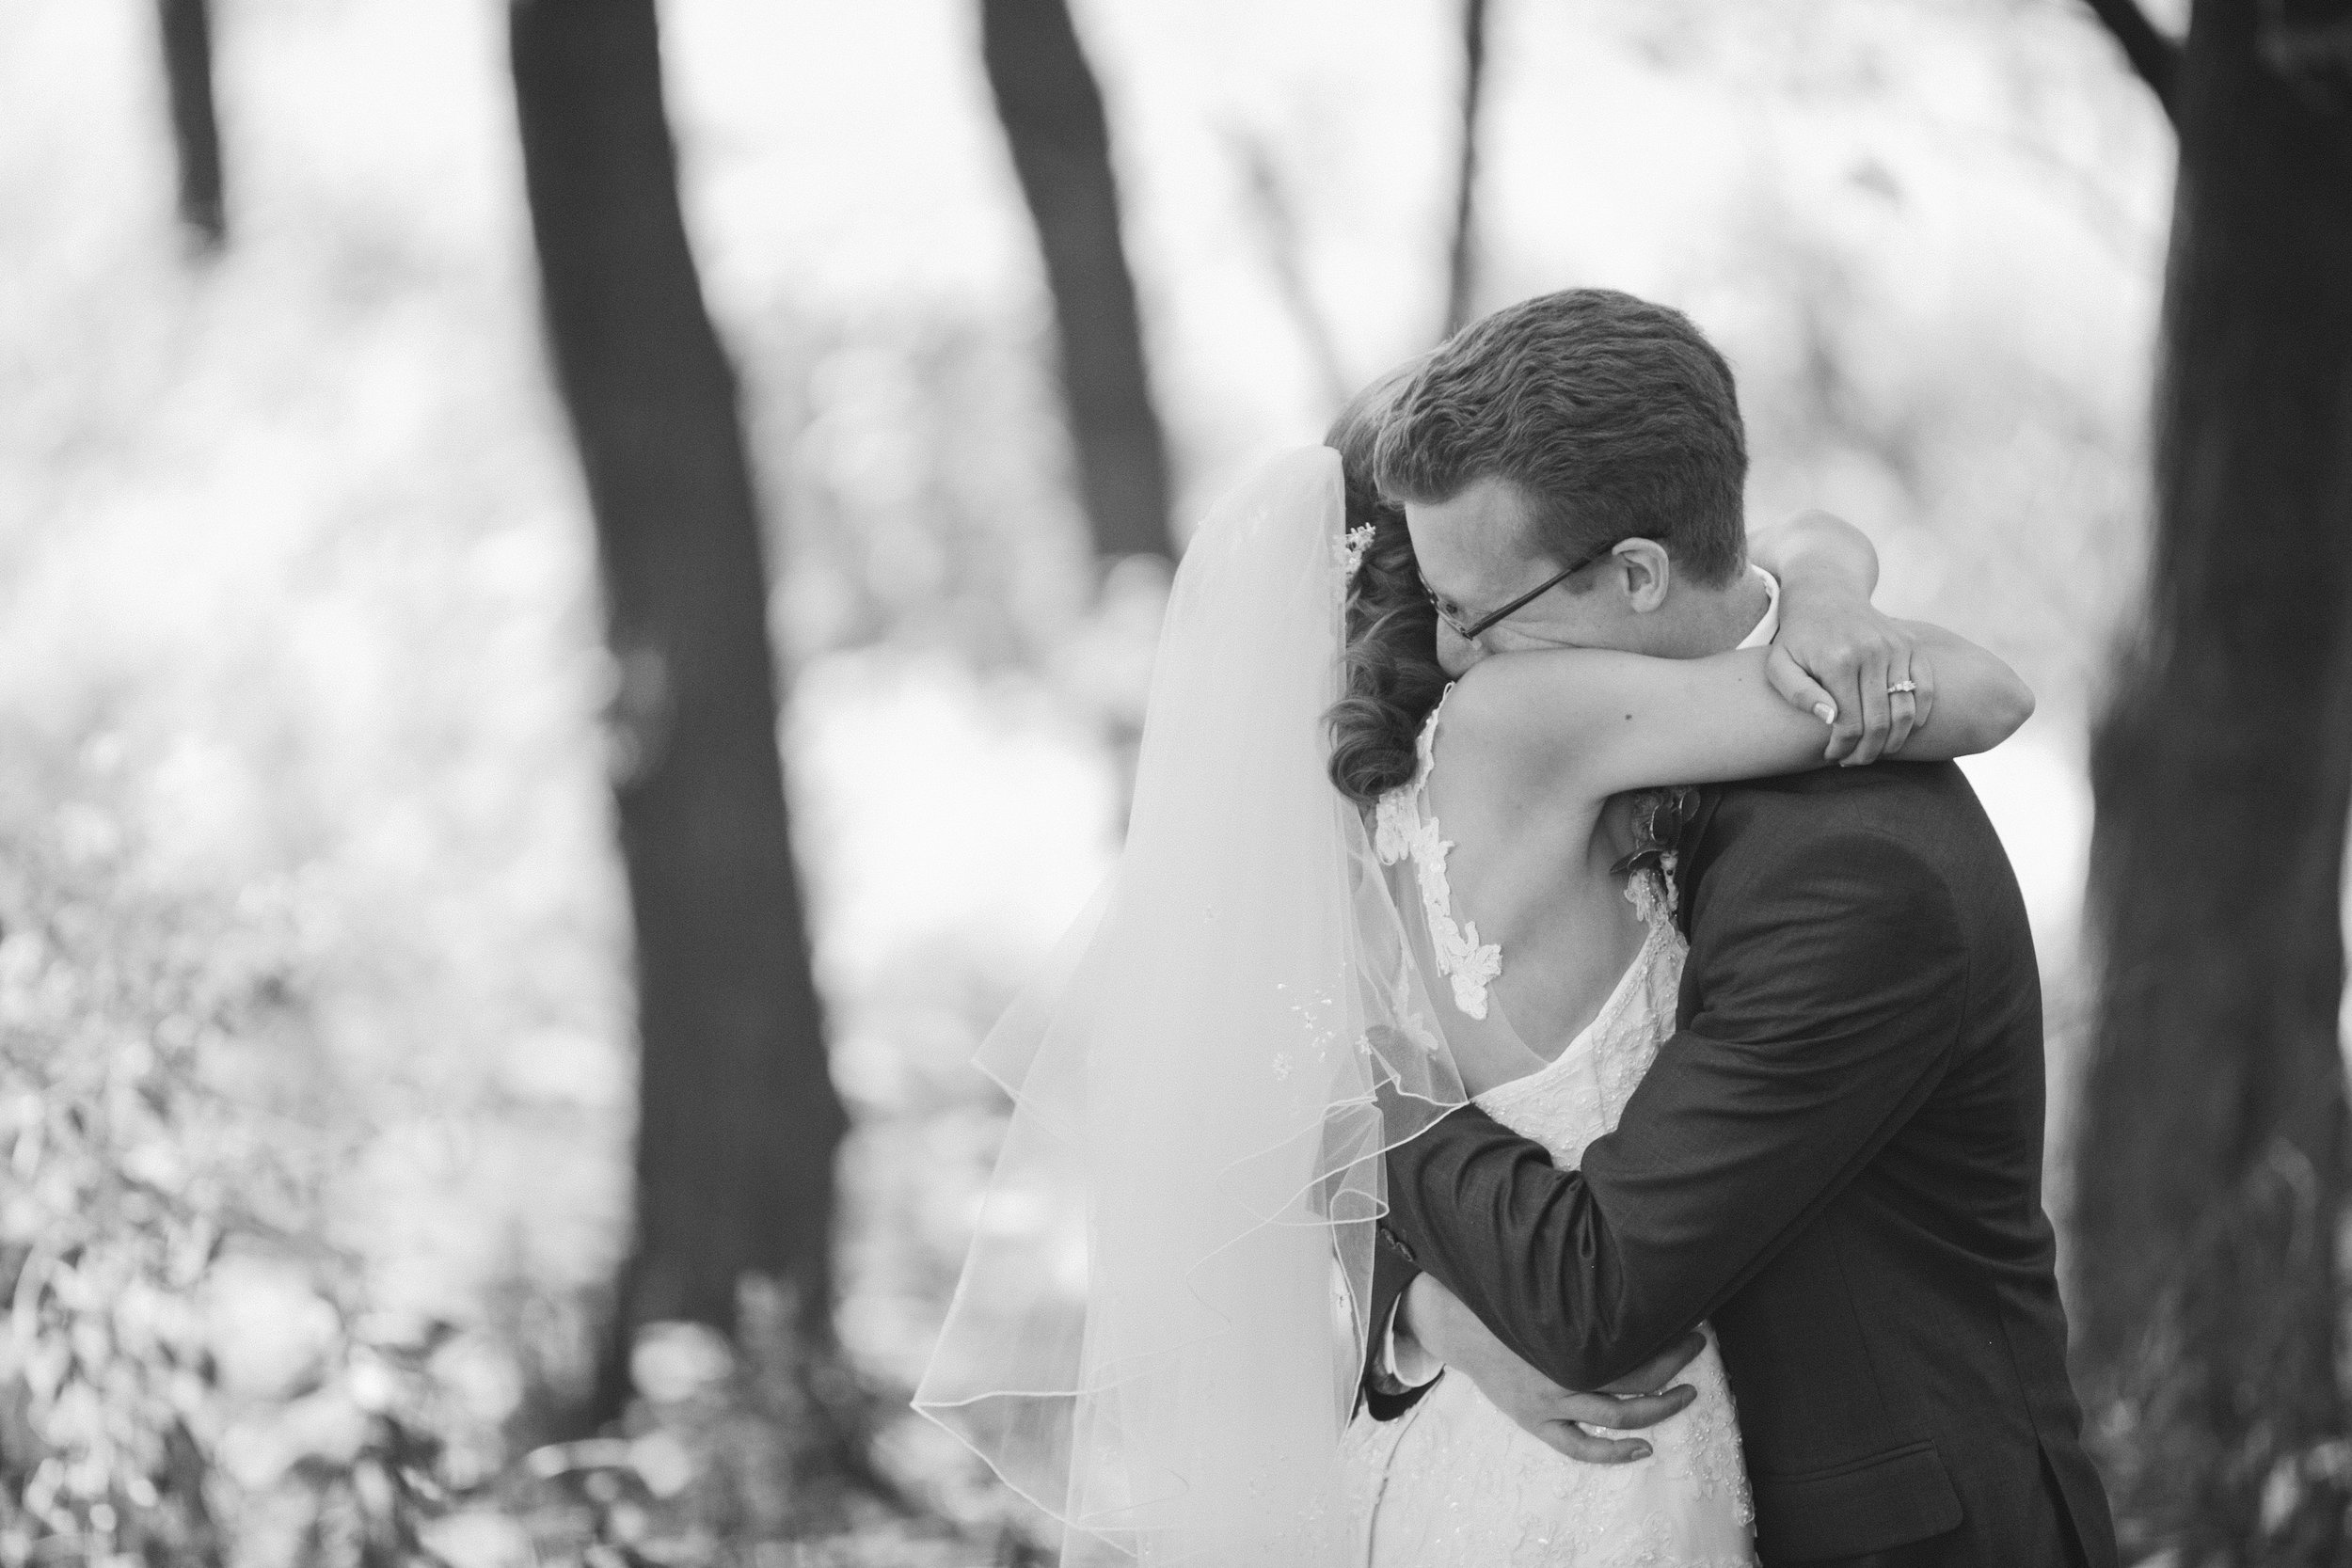 Amelia Renee Photography is one of the best and affordable wedding photographers Minneapolis